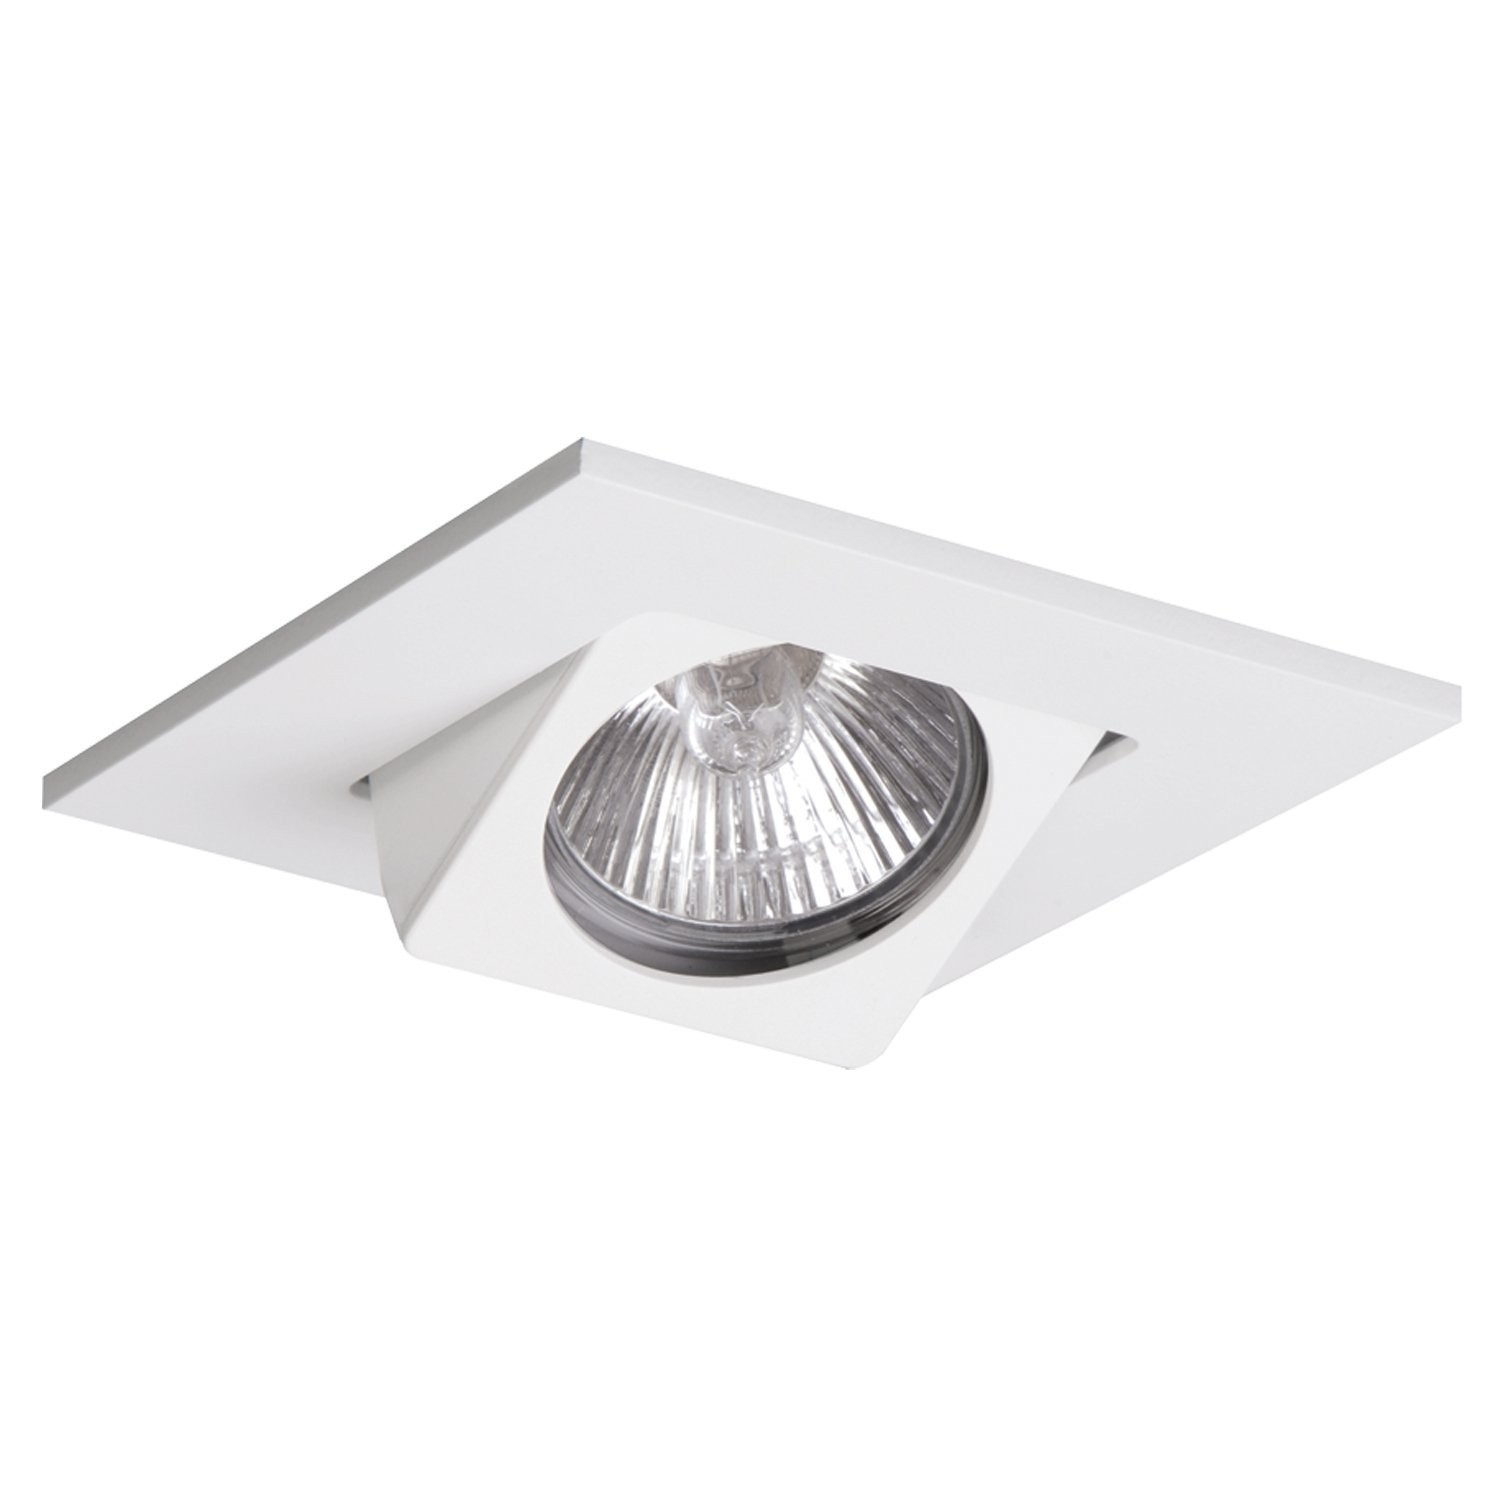 Halo WH Recessed Lighting Trim Adjustable Gimbal Square Trim - Halo light fixtures